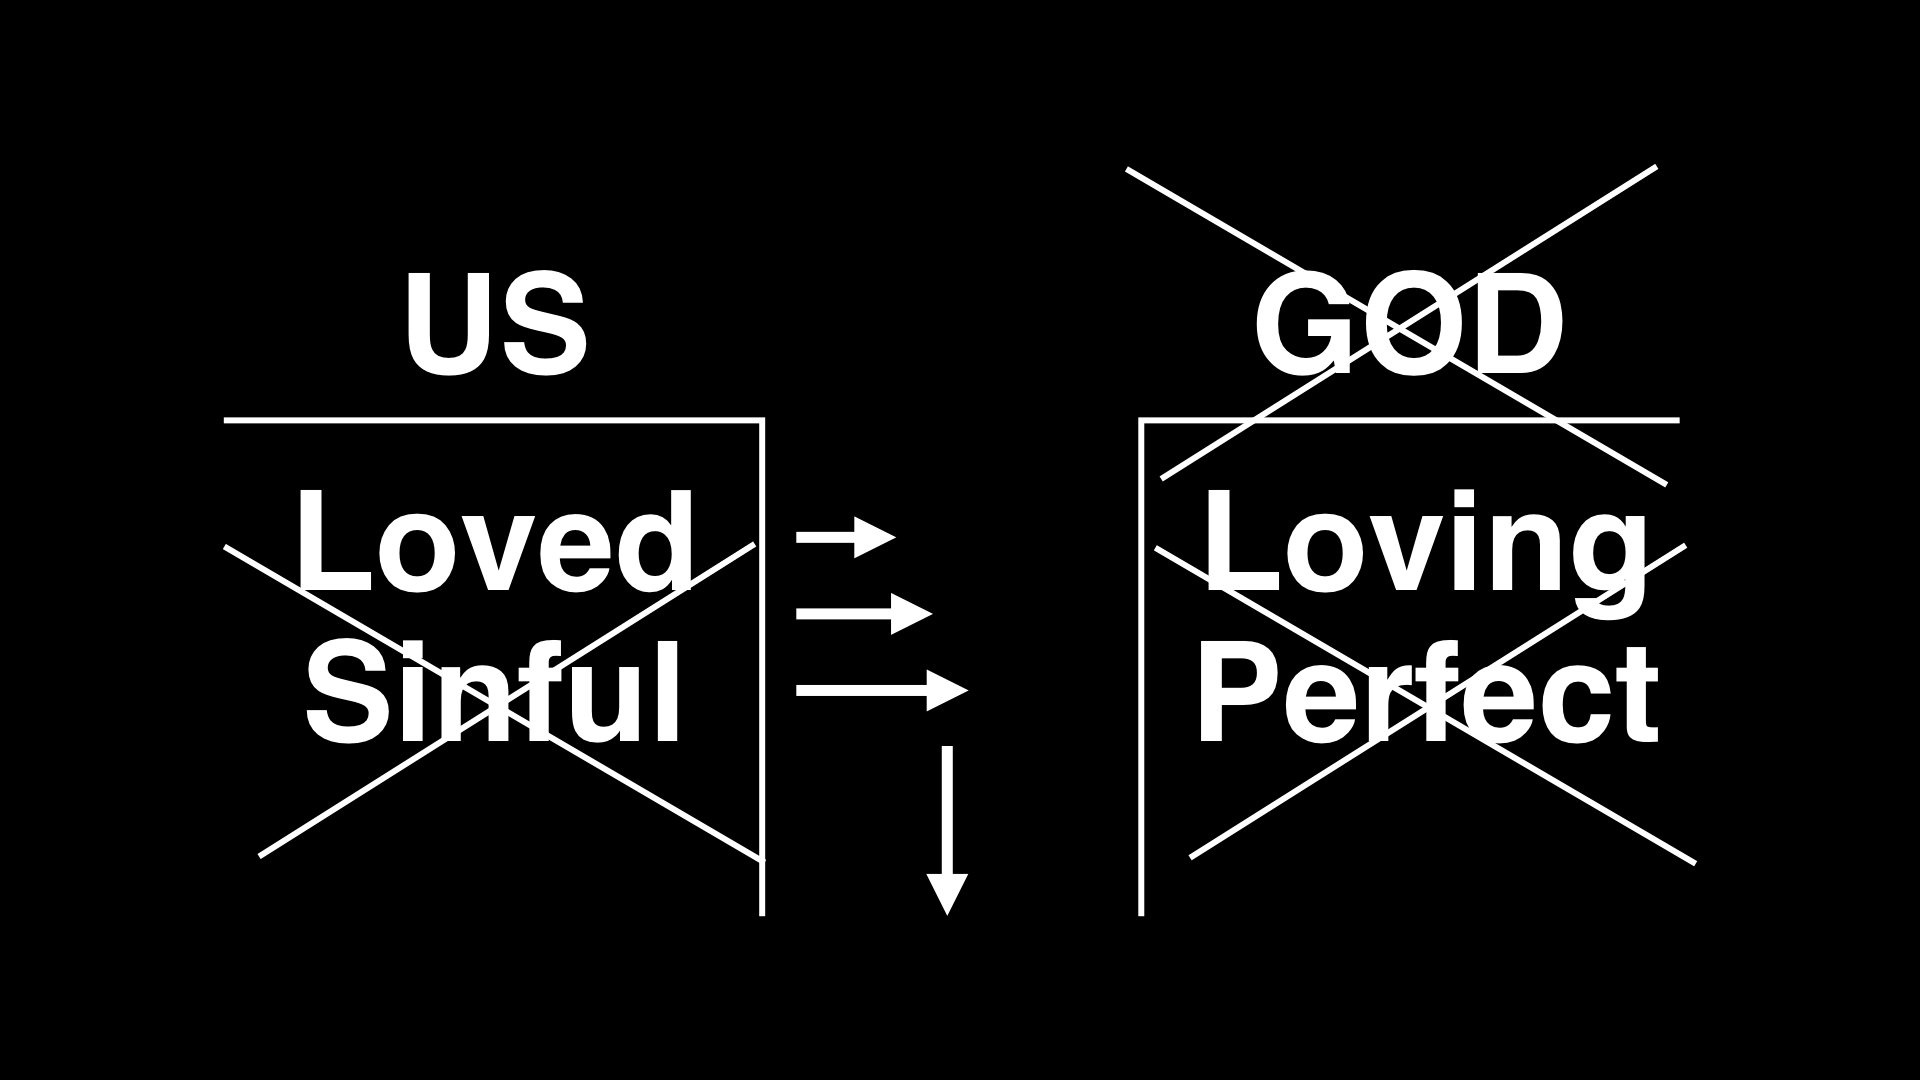 The problem with all of our attempts to bridge the gap is that they fall short.No matter how religious or good we are we just can't overcome our sin and make ourselves right with God.